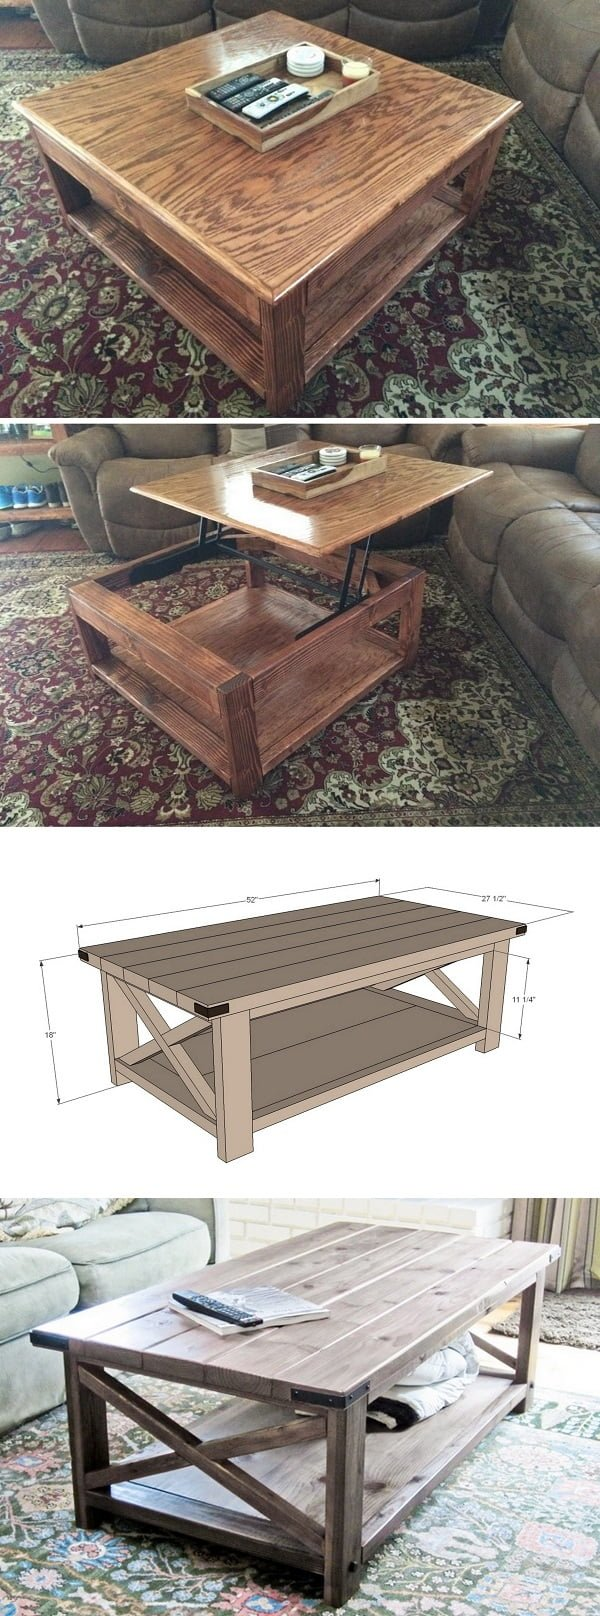 Check out the tutorial on how to build a #DIY #rustic lift top coffee table #homedecor